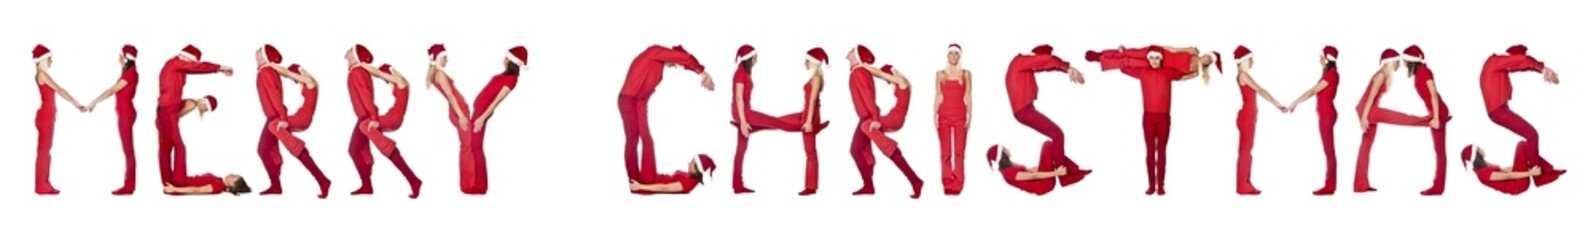 Group of red dressed people forming the phrase 'Merry Christmas'